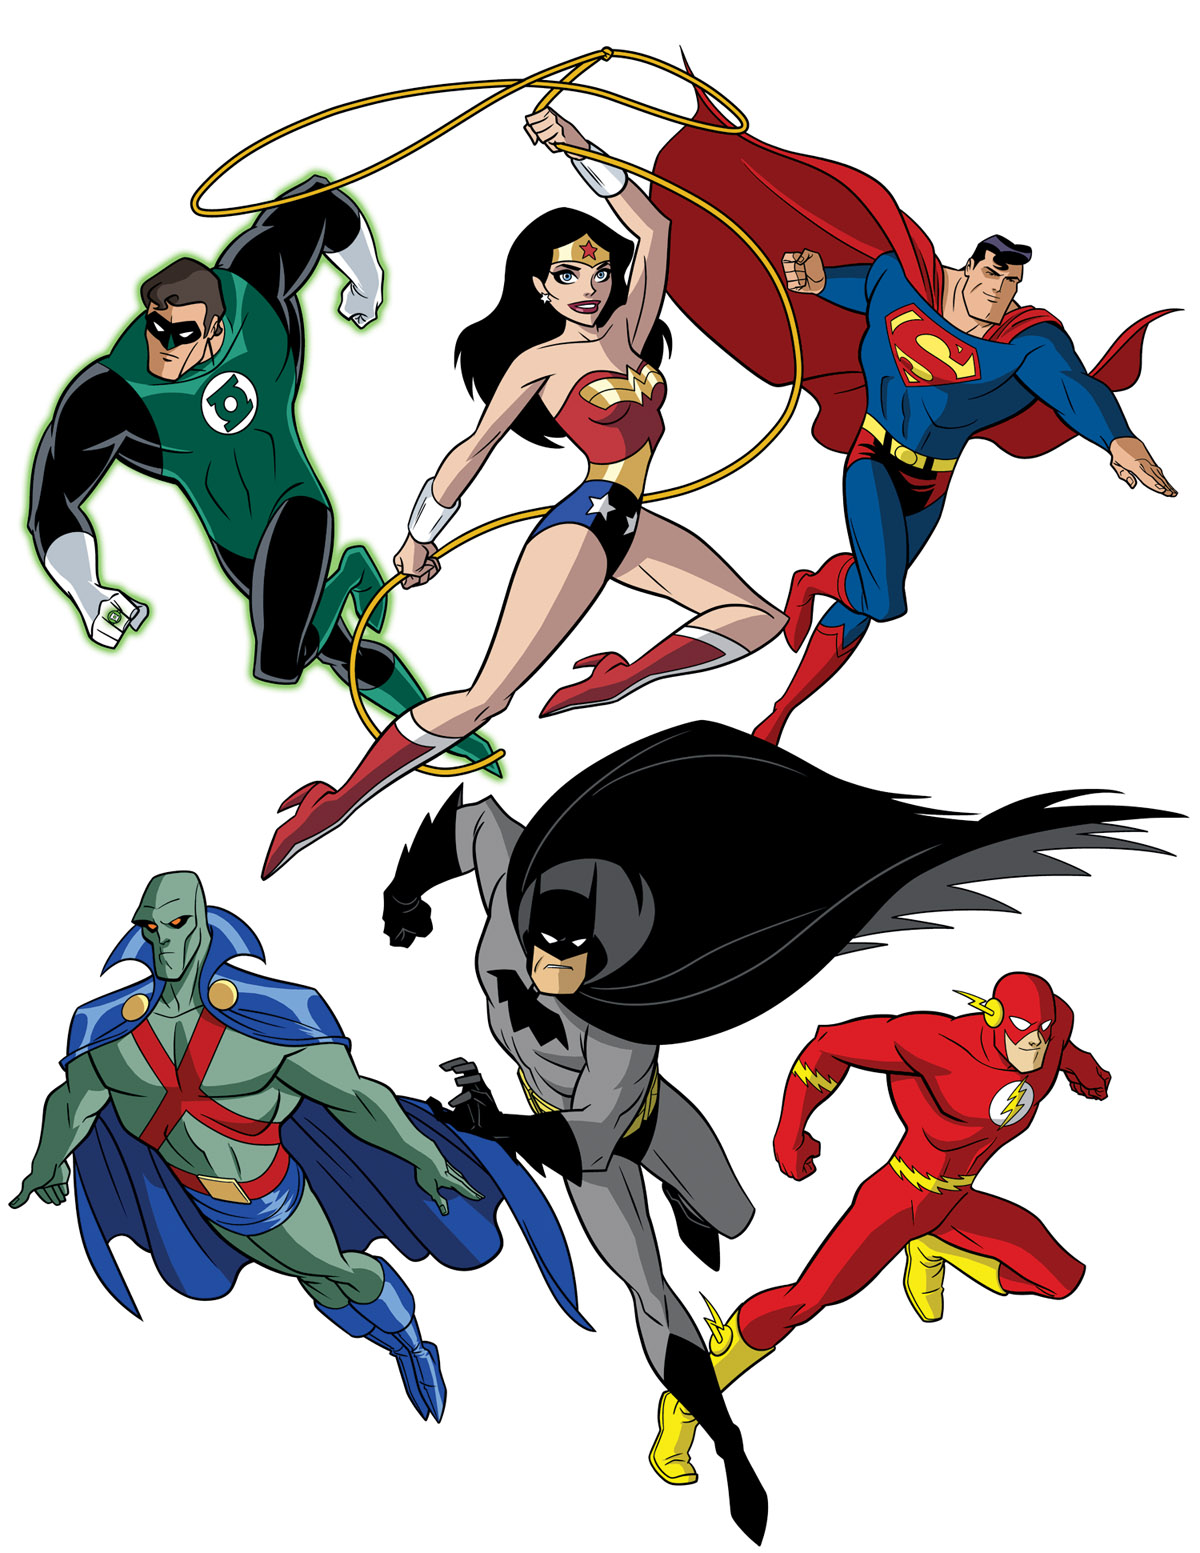 How To Draw Dc Heroes Justice League By Timlevins On Deviantart Superman by vandalocomics on deviantart. how to draw dc heroes justice league